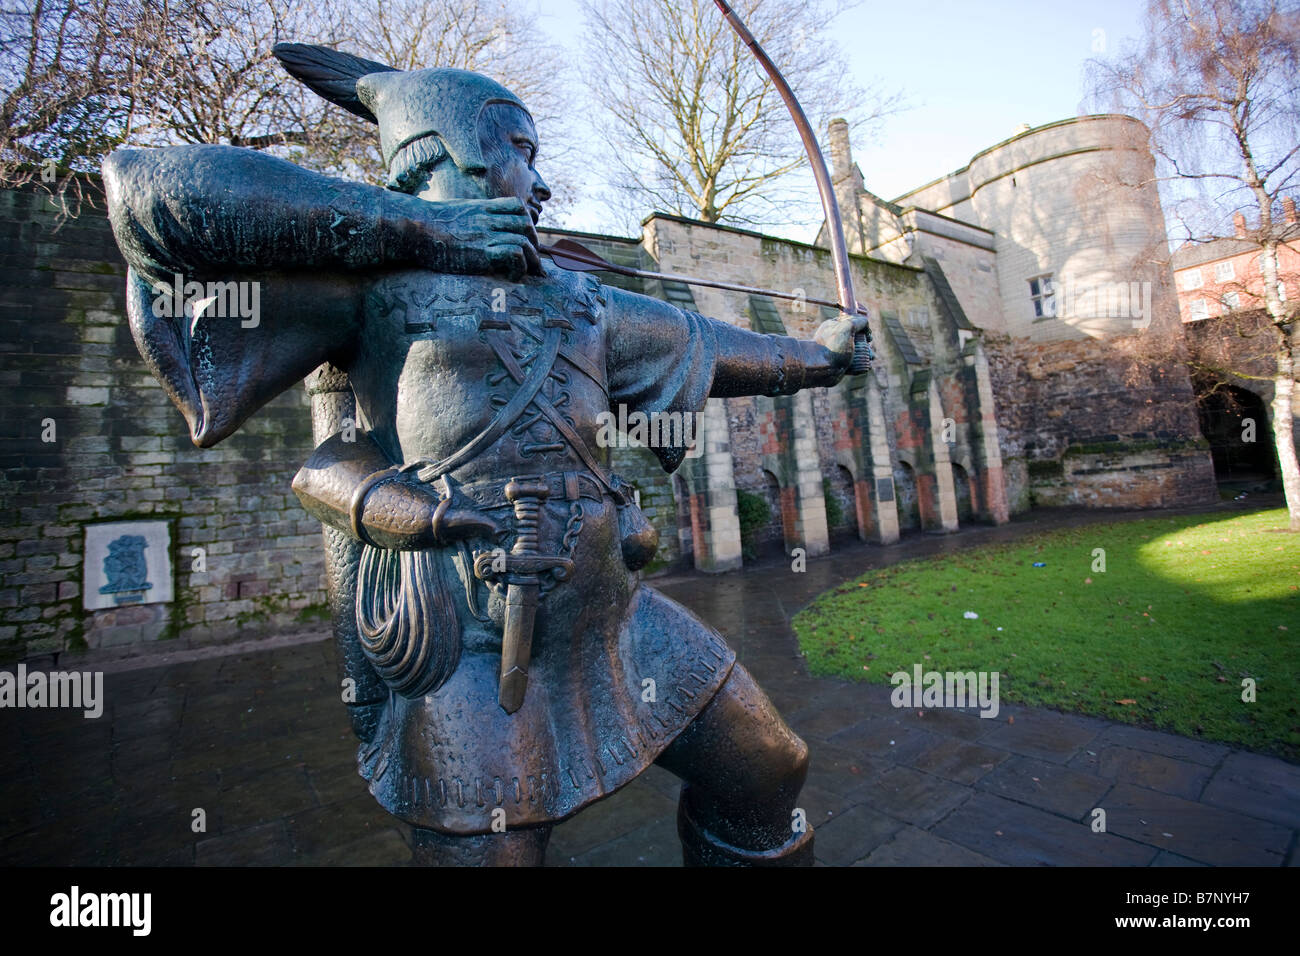 A bronze statue of Robin Hood outside Nottingham Castle, England. - Stock Image